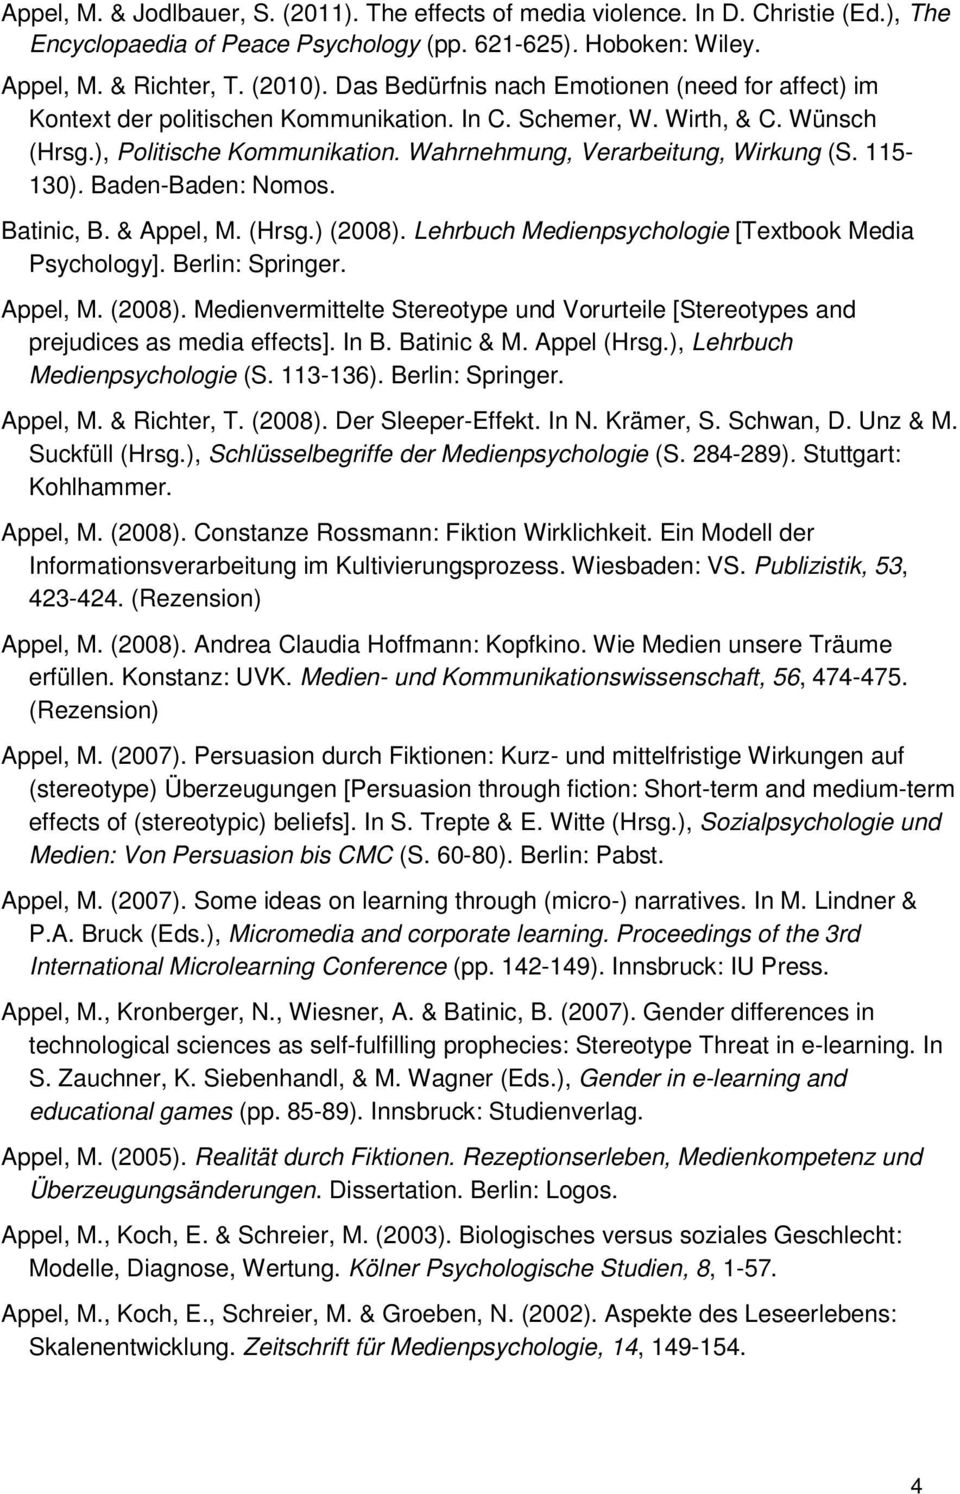 115-130). Baden-Baden: Nomos. Batinic, B. & Appel, M. (Hrsg.) (2008). Lehrbuch Medienpsychologie [Textbook Media Psychology]. Berlin: Springer. Appel, M. (2008). Medienvermittelte Stereotype und Vorurteile [Stereotypes and prejudices as media effects].